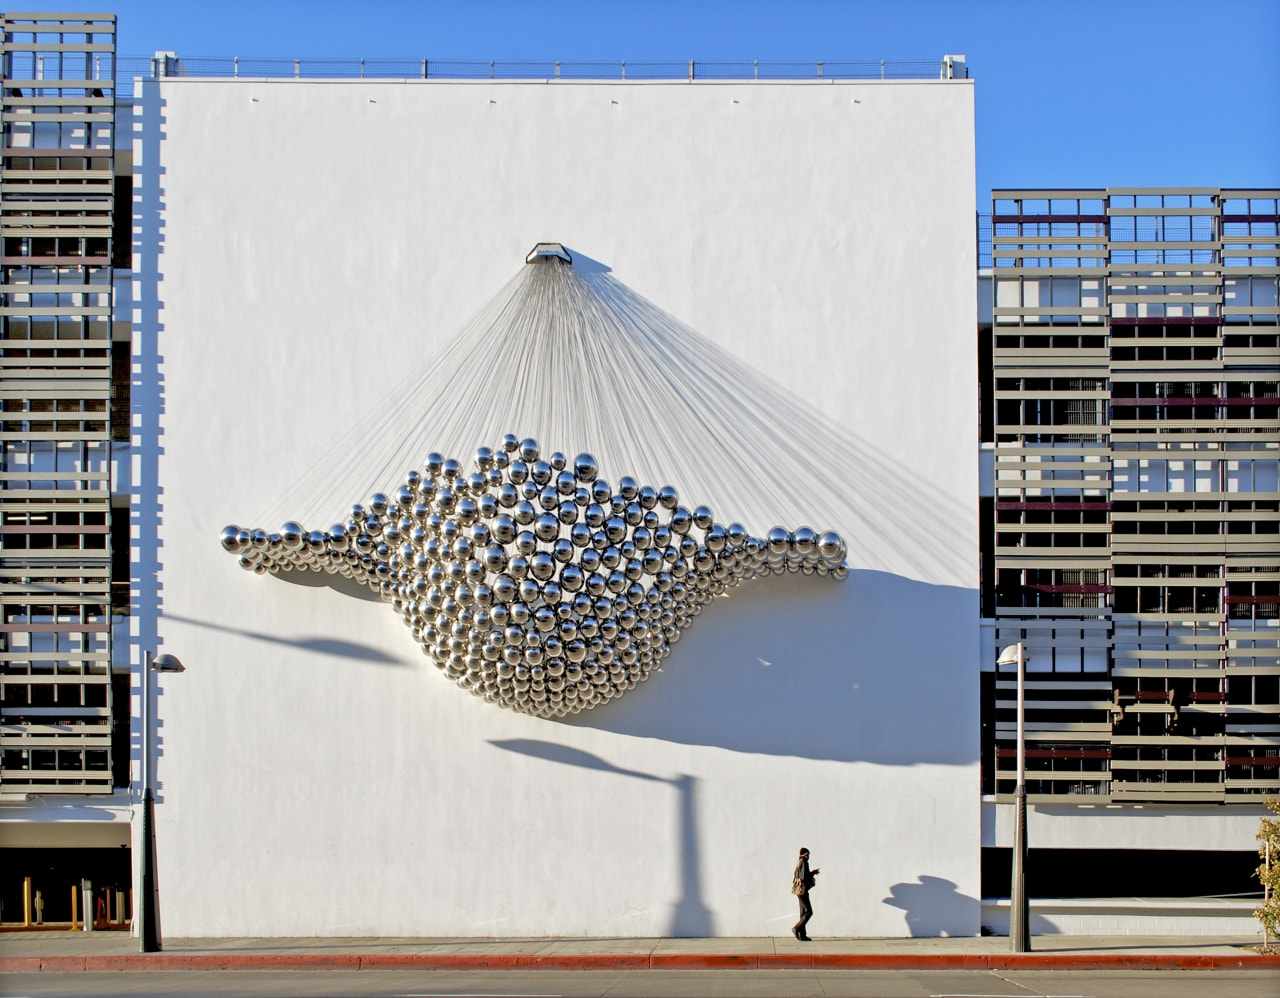 Sculpture on wall. architecture, building, facade, sky, structure, tower block, white